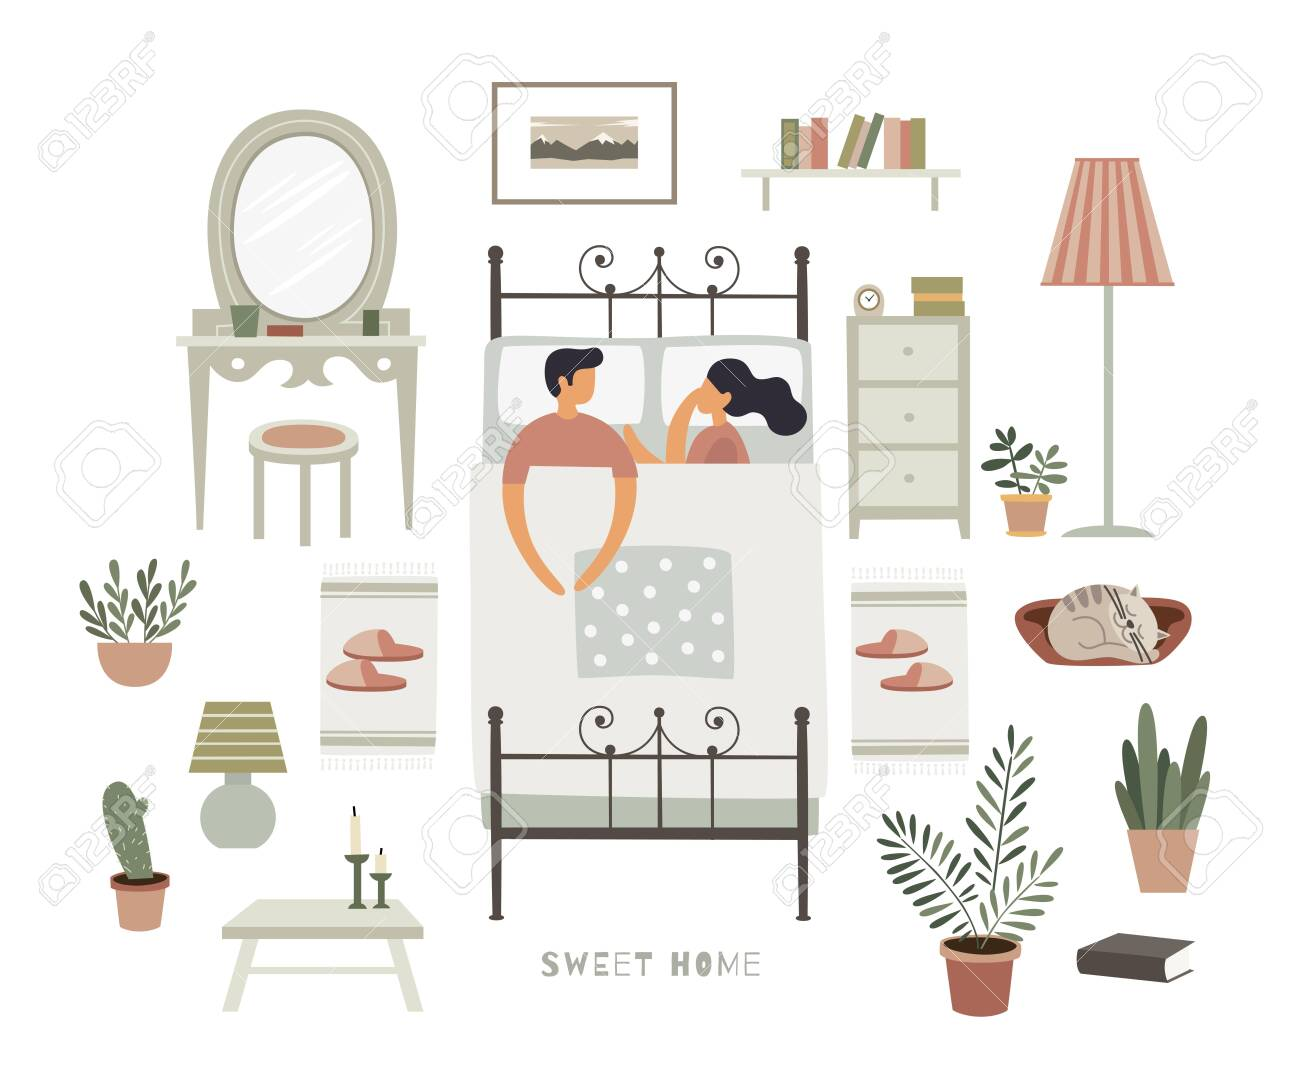 A man and a woman are sleeping together on a bed. A set of bedroom interior items creating a home comfort. Vector illustration in trendy flat style on white isolated background. - 151373716